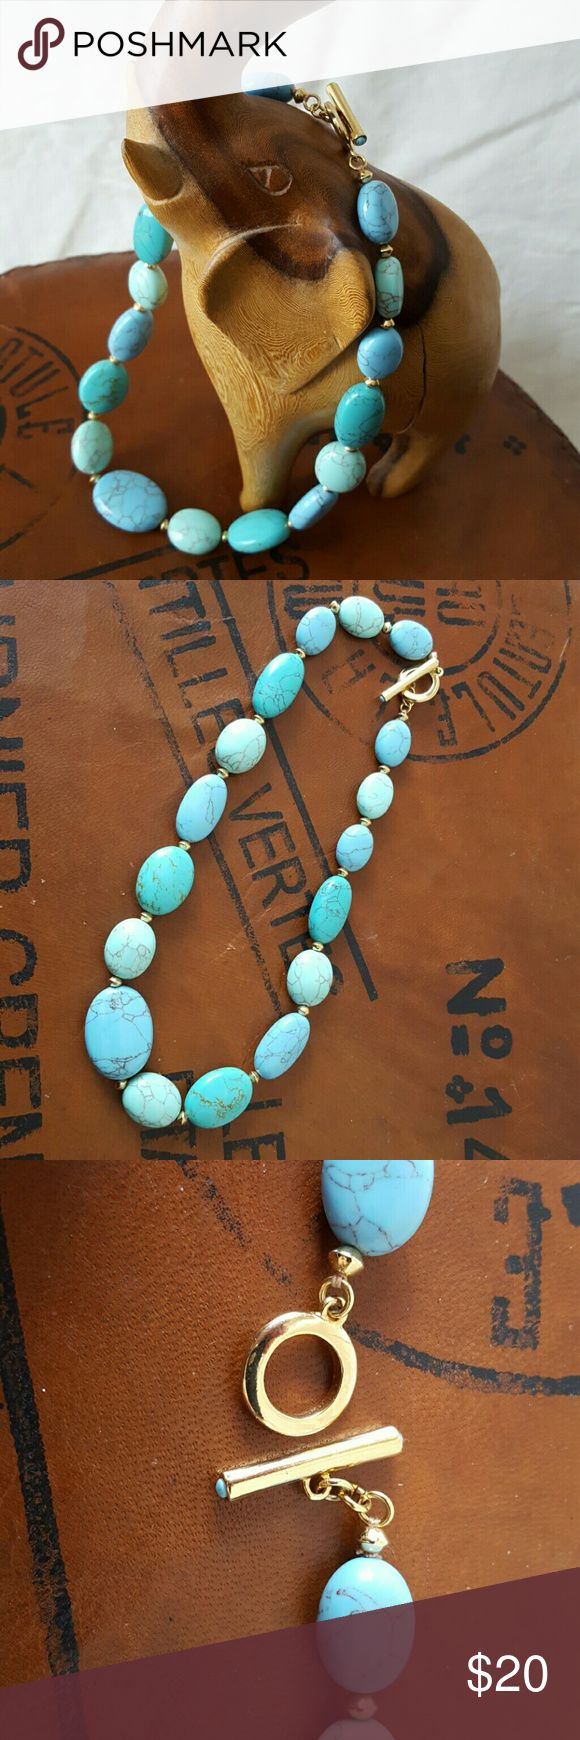 Ralph Lauren turquoise bead necklace High quality, costume jewelry necklace. Faux turquoise stones with gold stations. Choker length. Pretty toggle closure. Excellent condition. Looks lovely with white dresses! Ralph Lauren Jewelry Necklaces